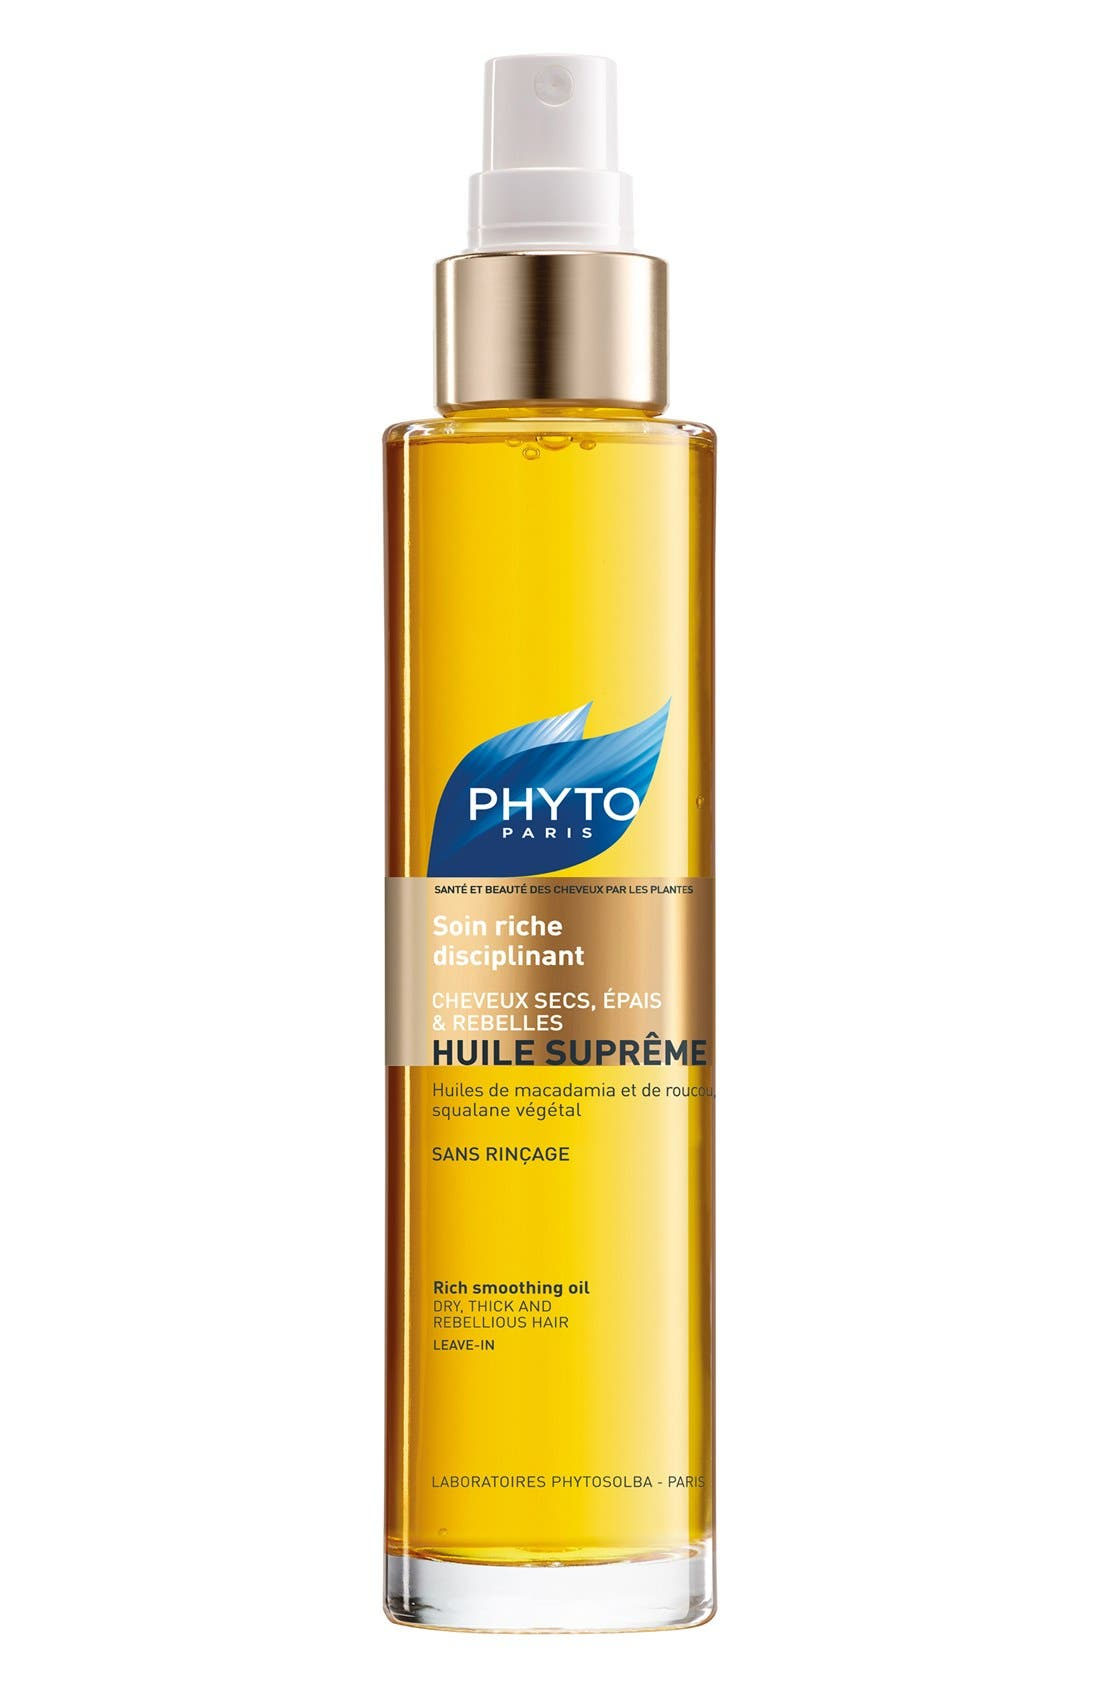 PHYTO Huile Supreme Rich Smoothing Oil